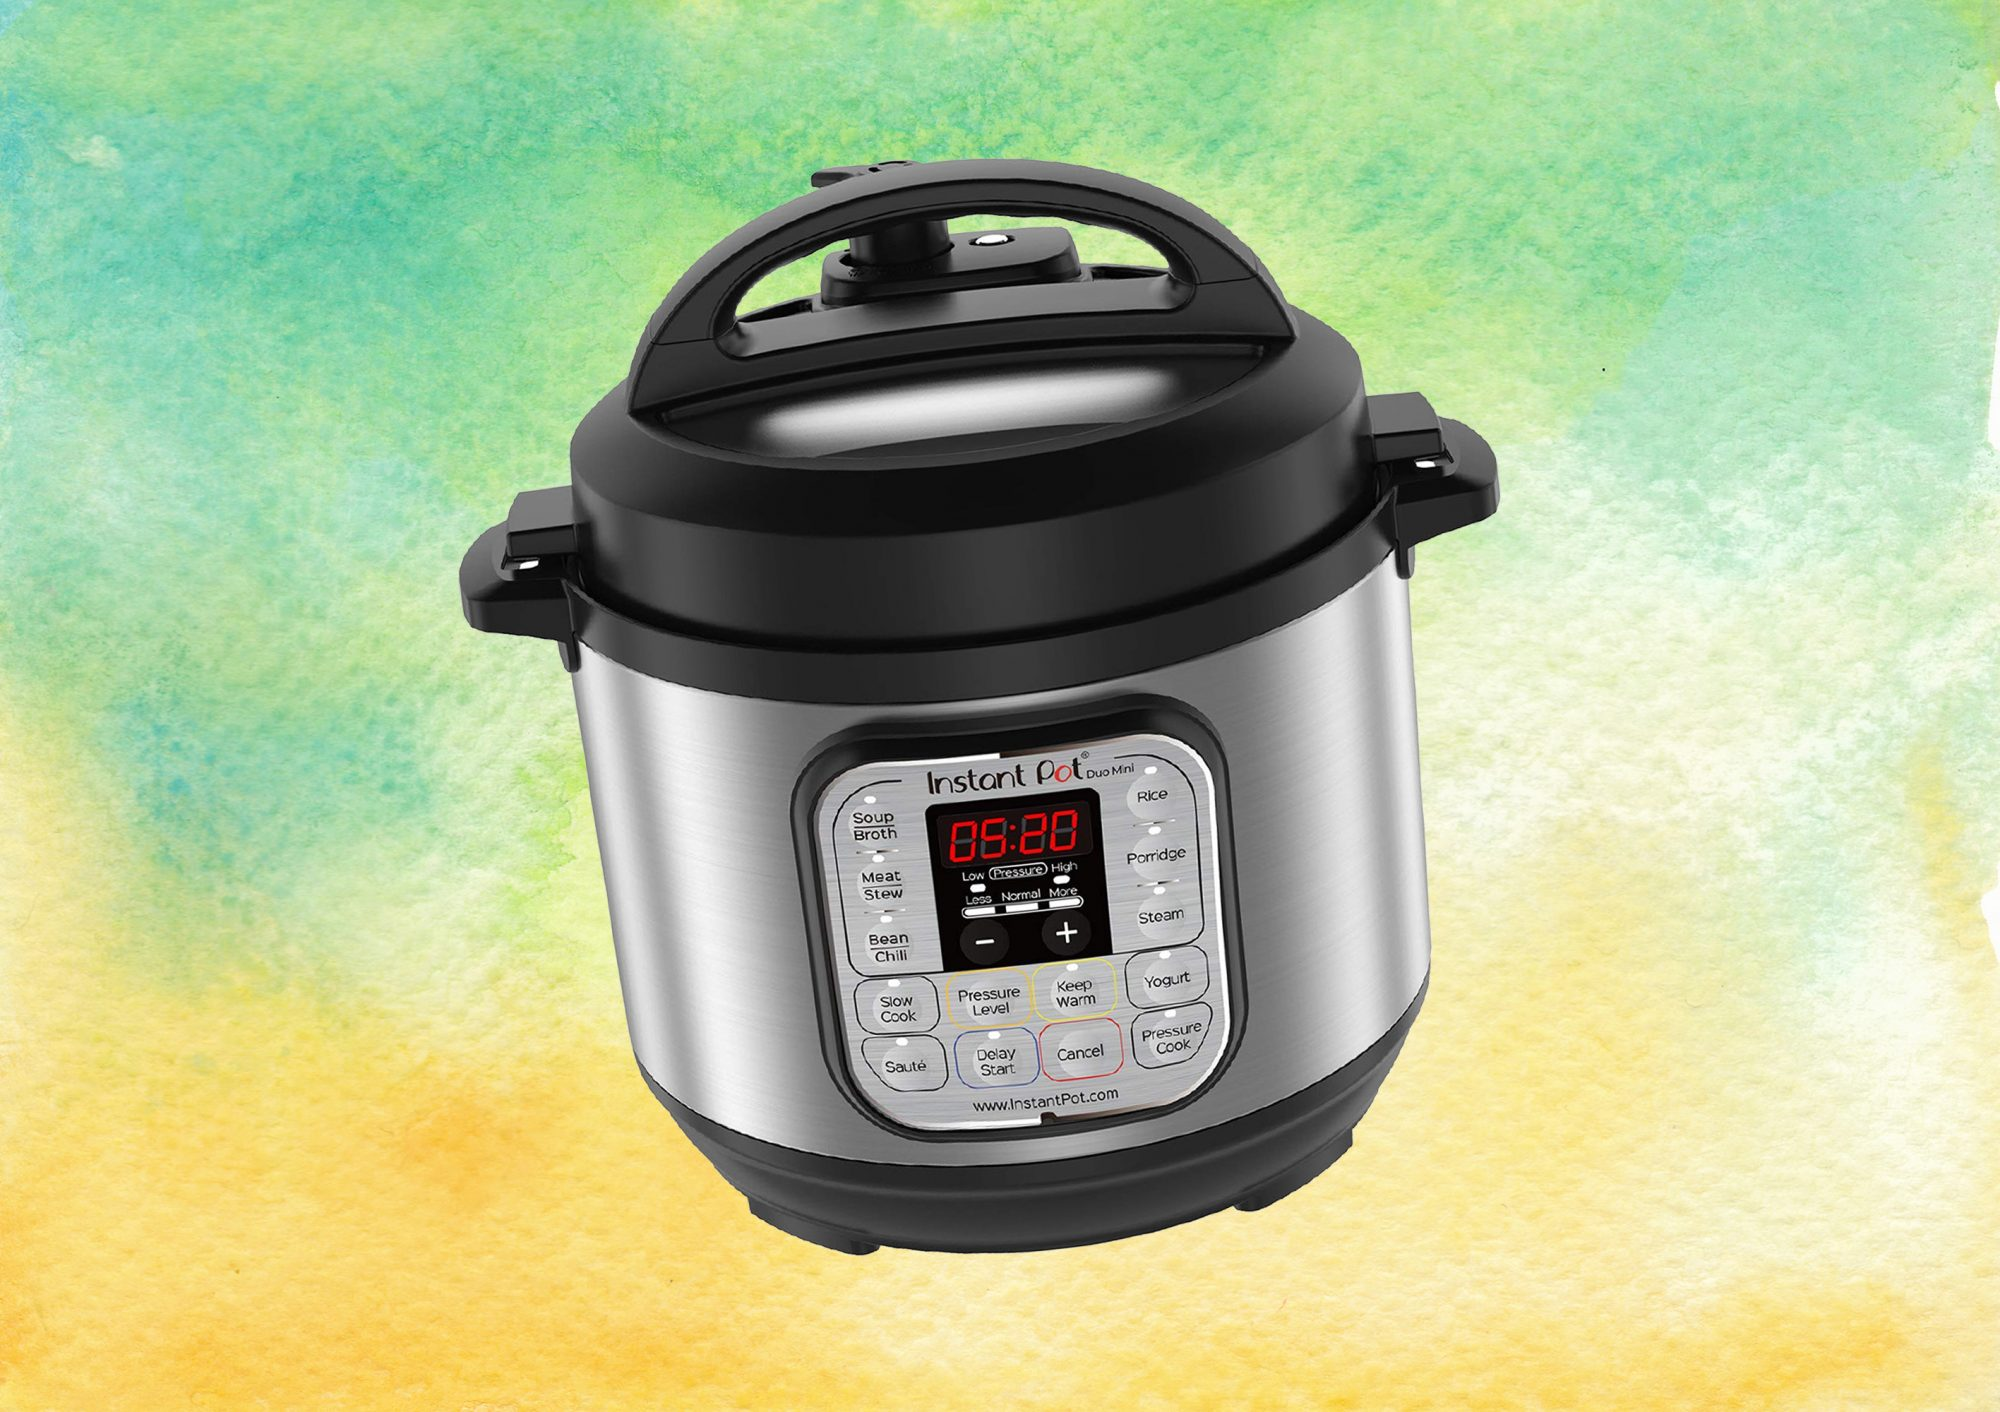 11 Things You Didn't Know Your Instant Pot Could Do